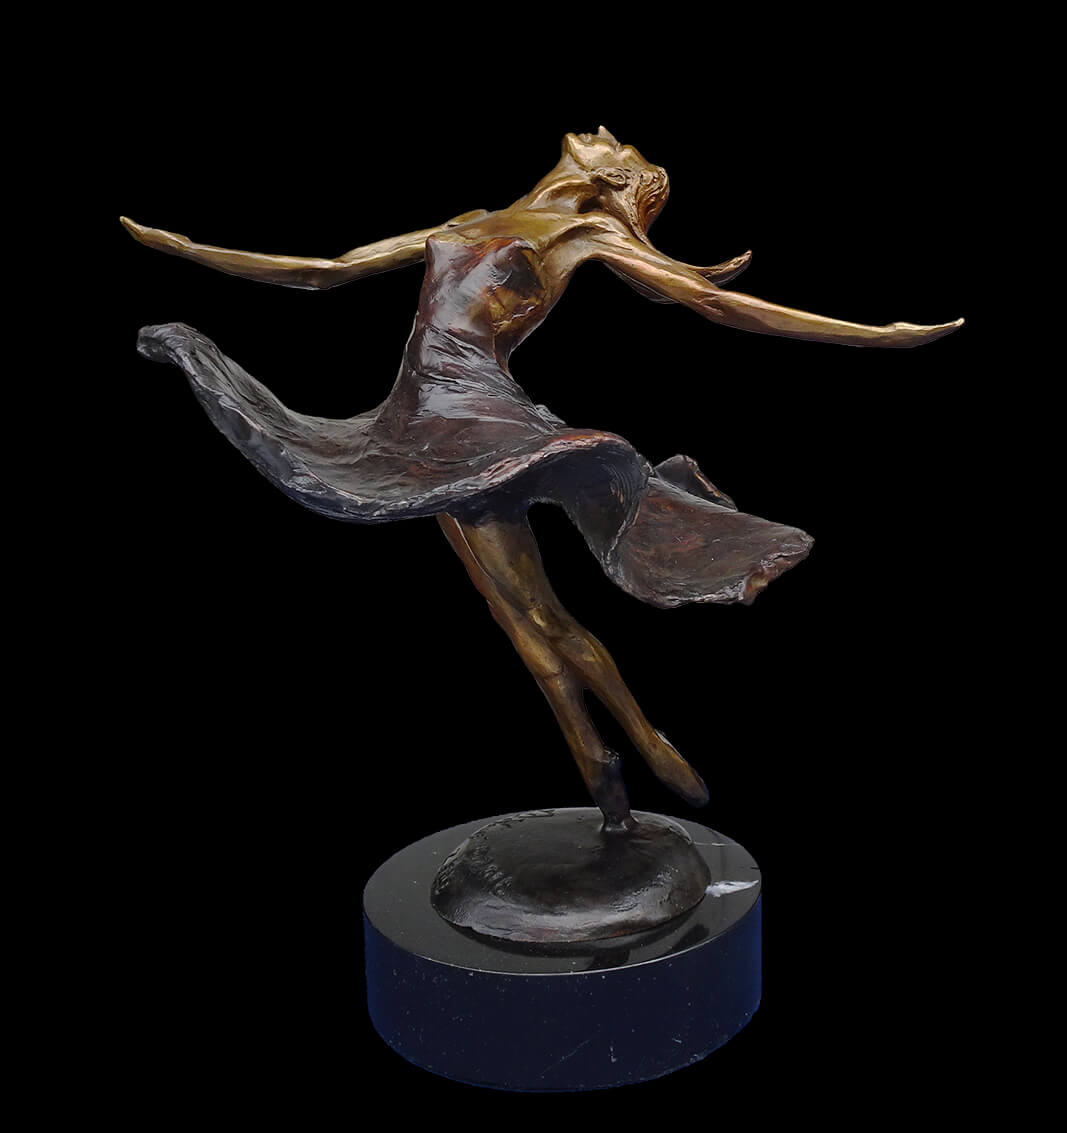 A small ballet dancer in bronze by sculptor Andrew DeVries copyright 2018.